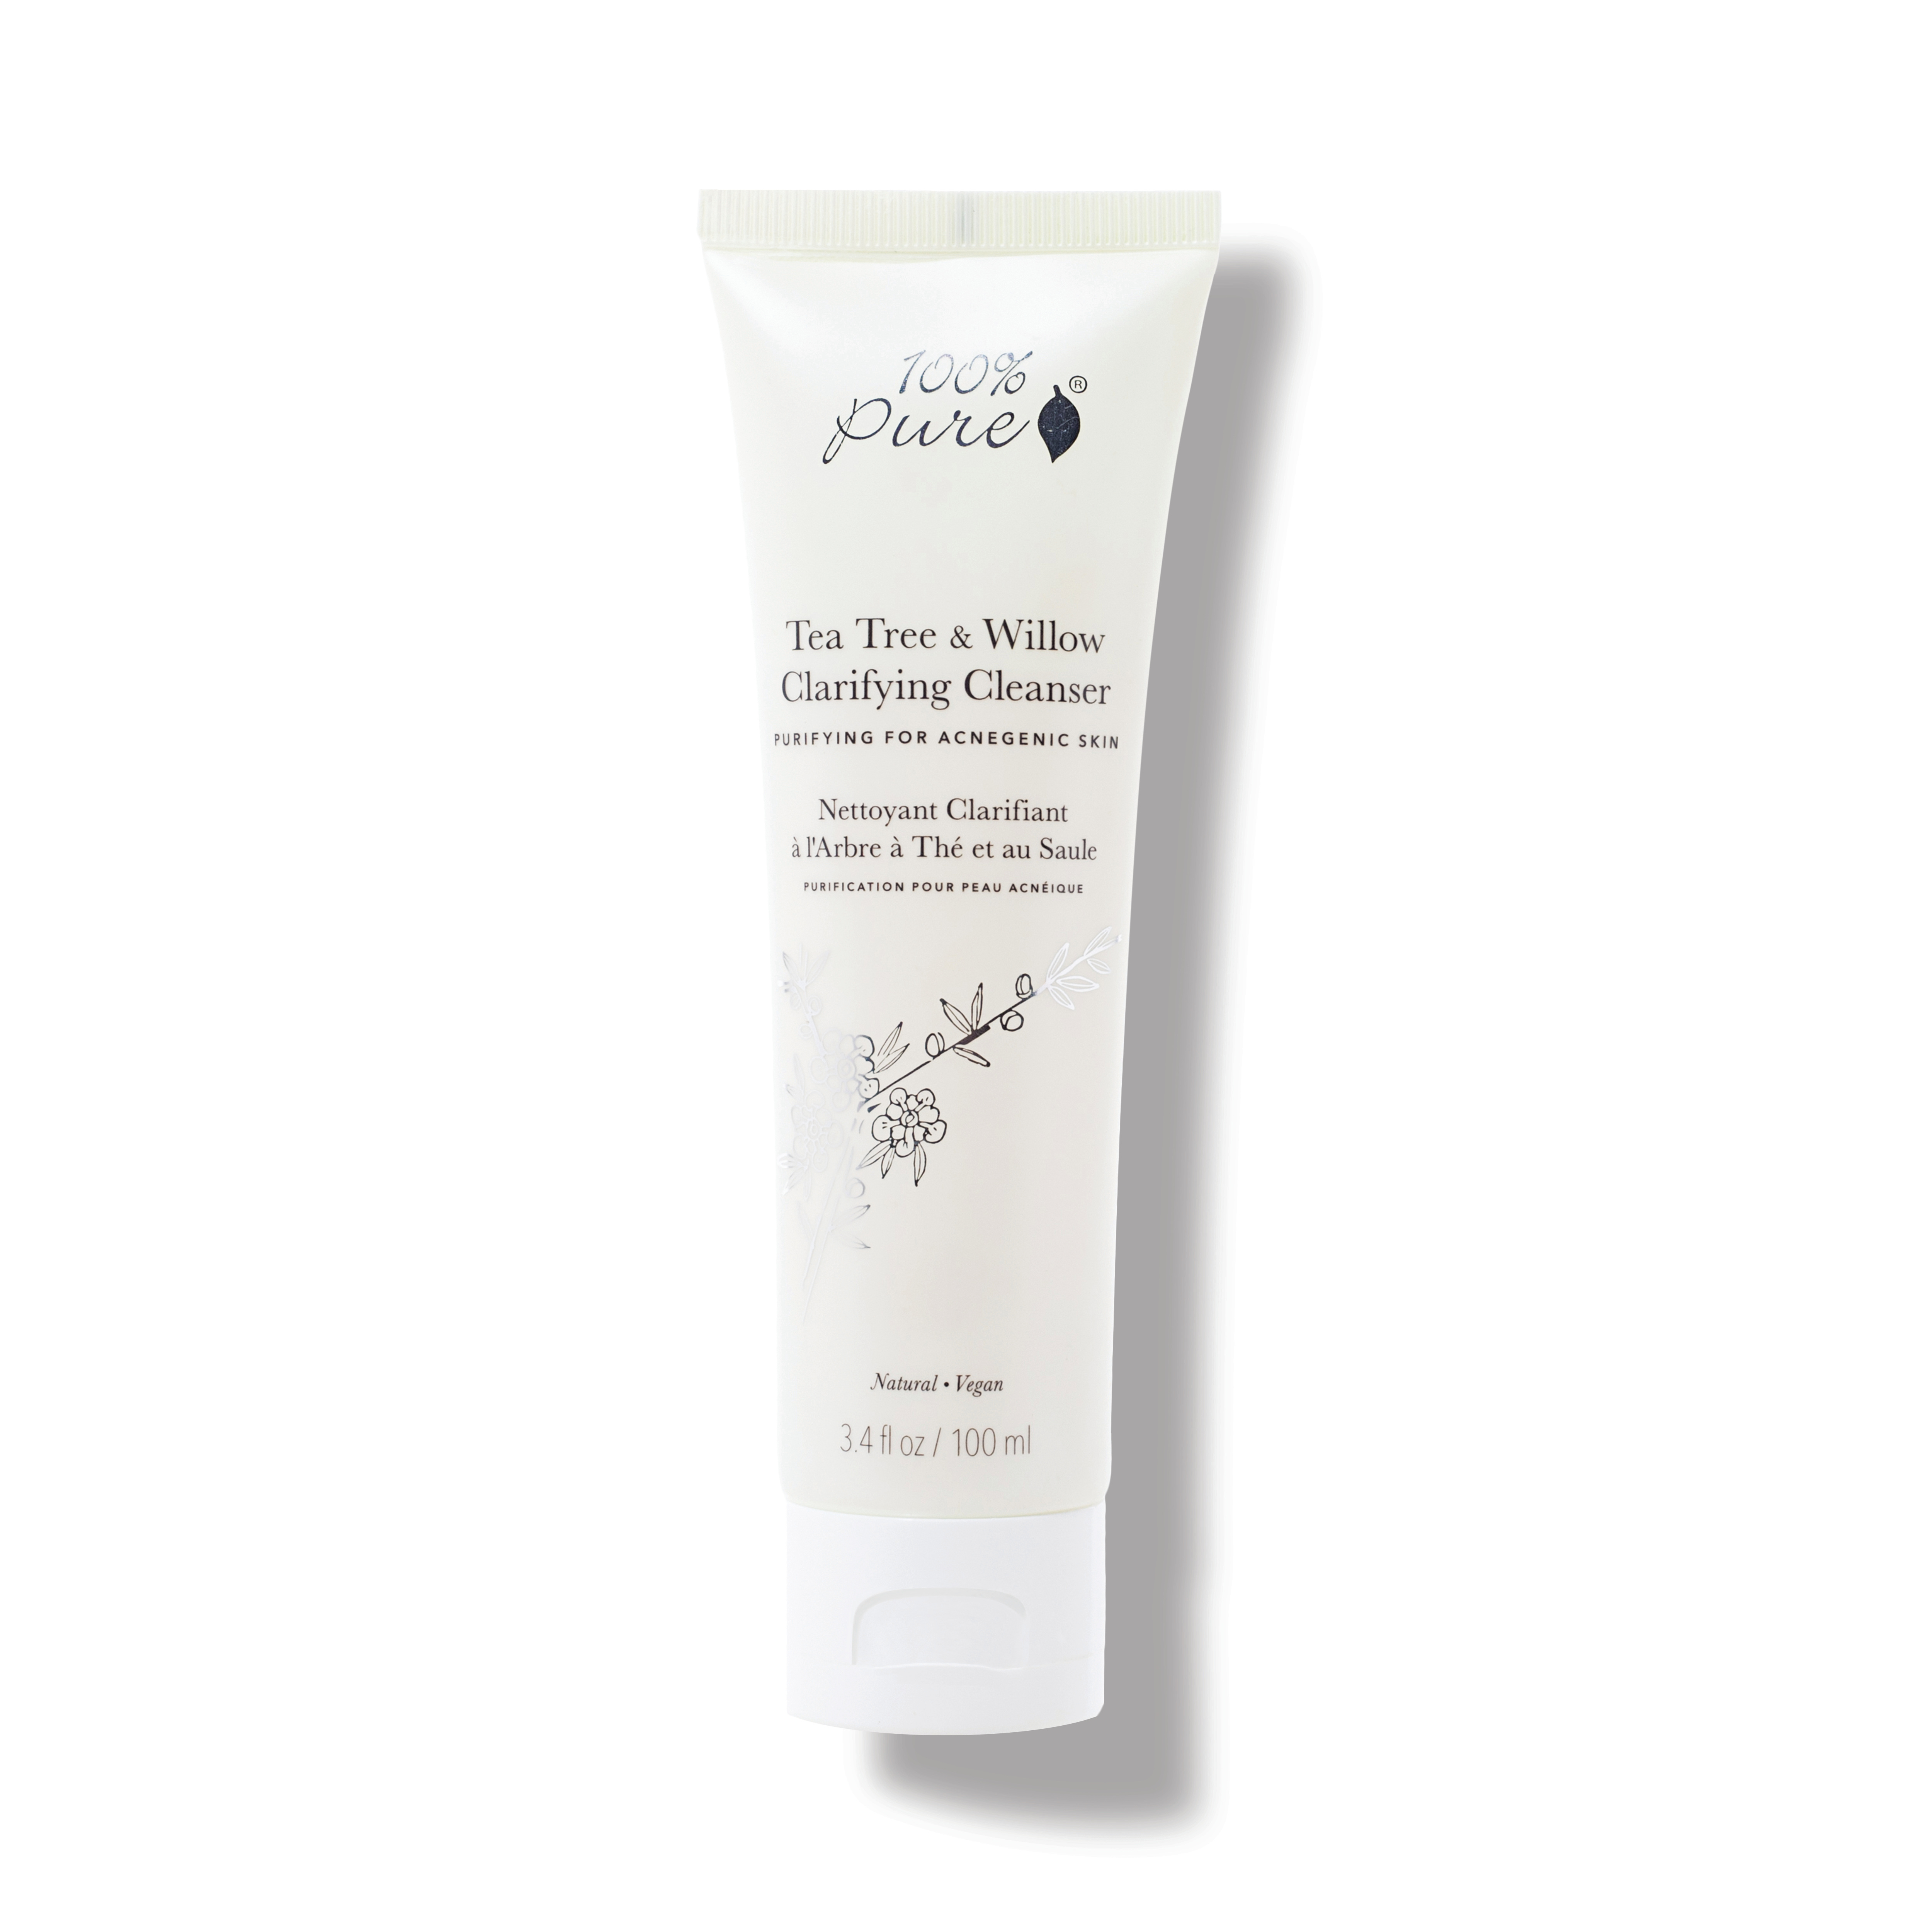 Product Grid - Tea Tree & Willow Clarifying Cleanser